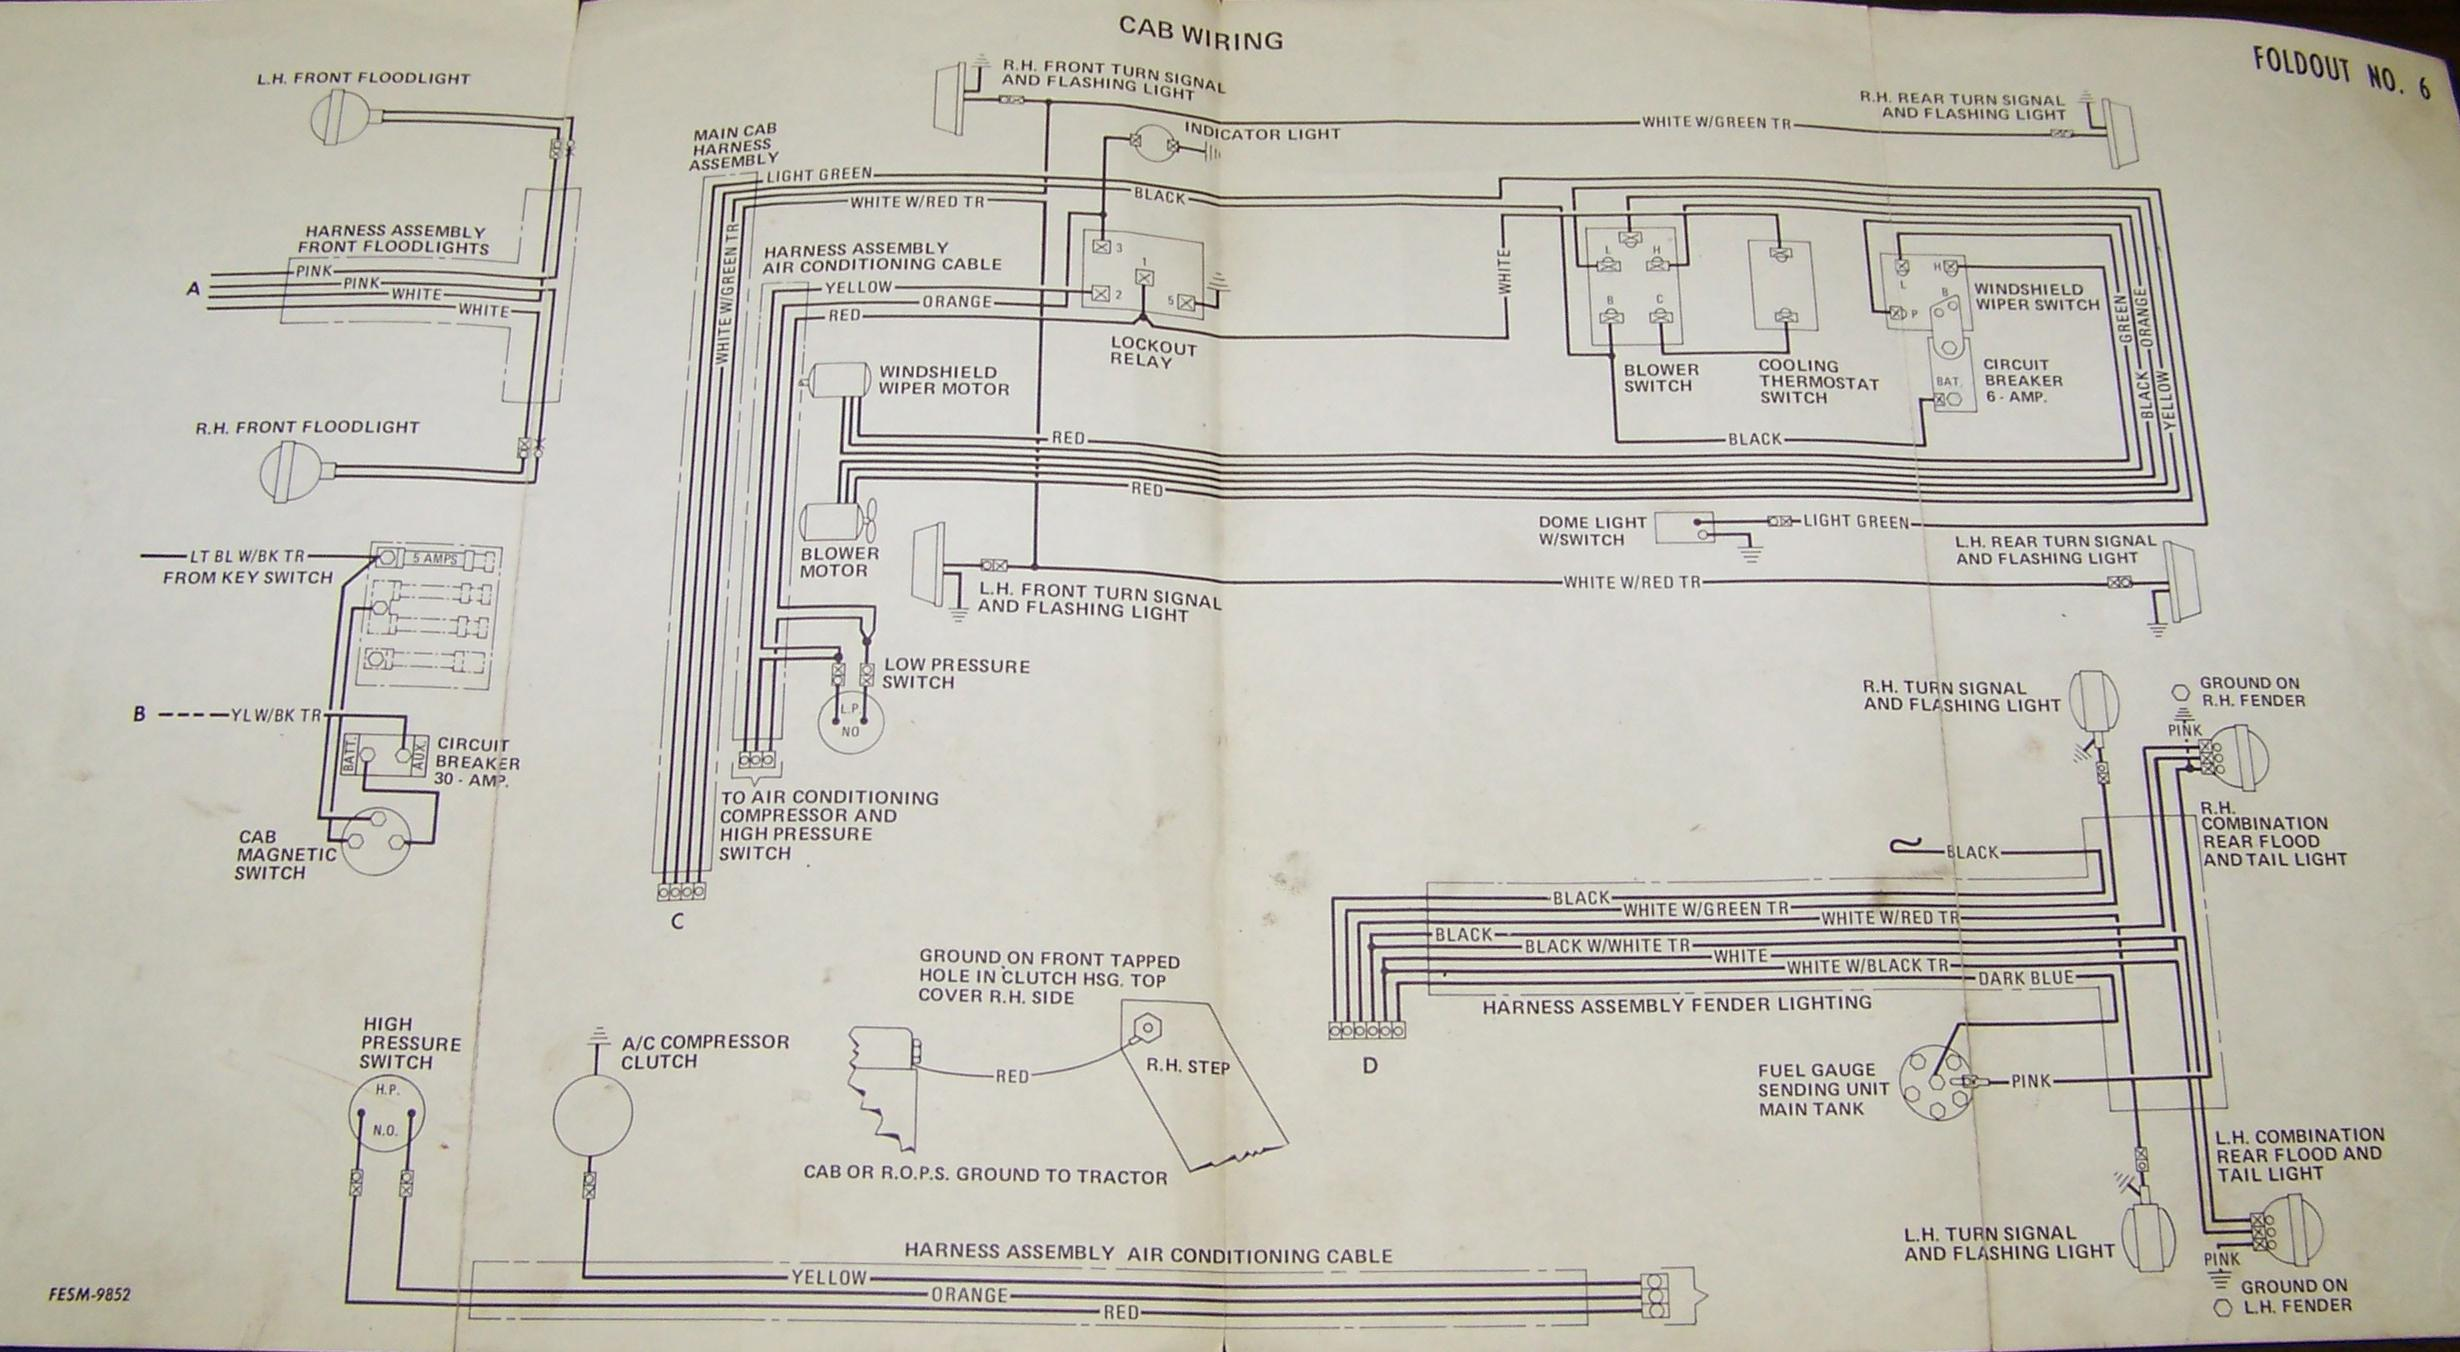 ih 1256 wiring diagram online schematic diagram u2022 rh holyoak co International 4700 Wiring Diagram Diesel Tractor Wiring Diagram